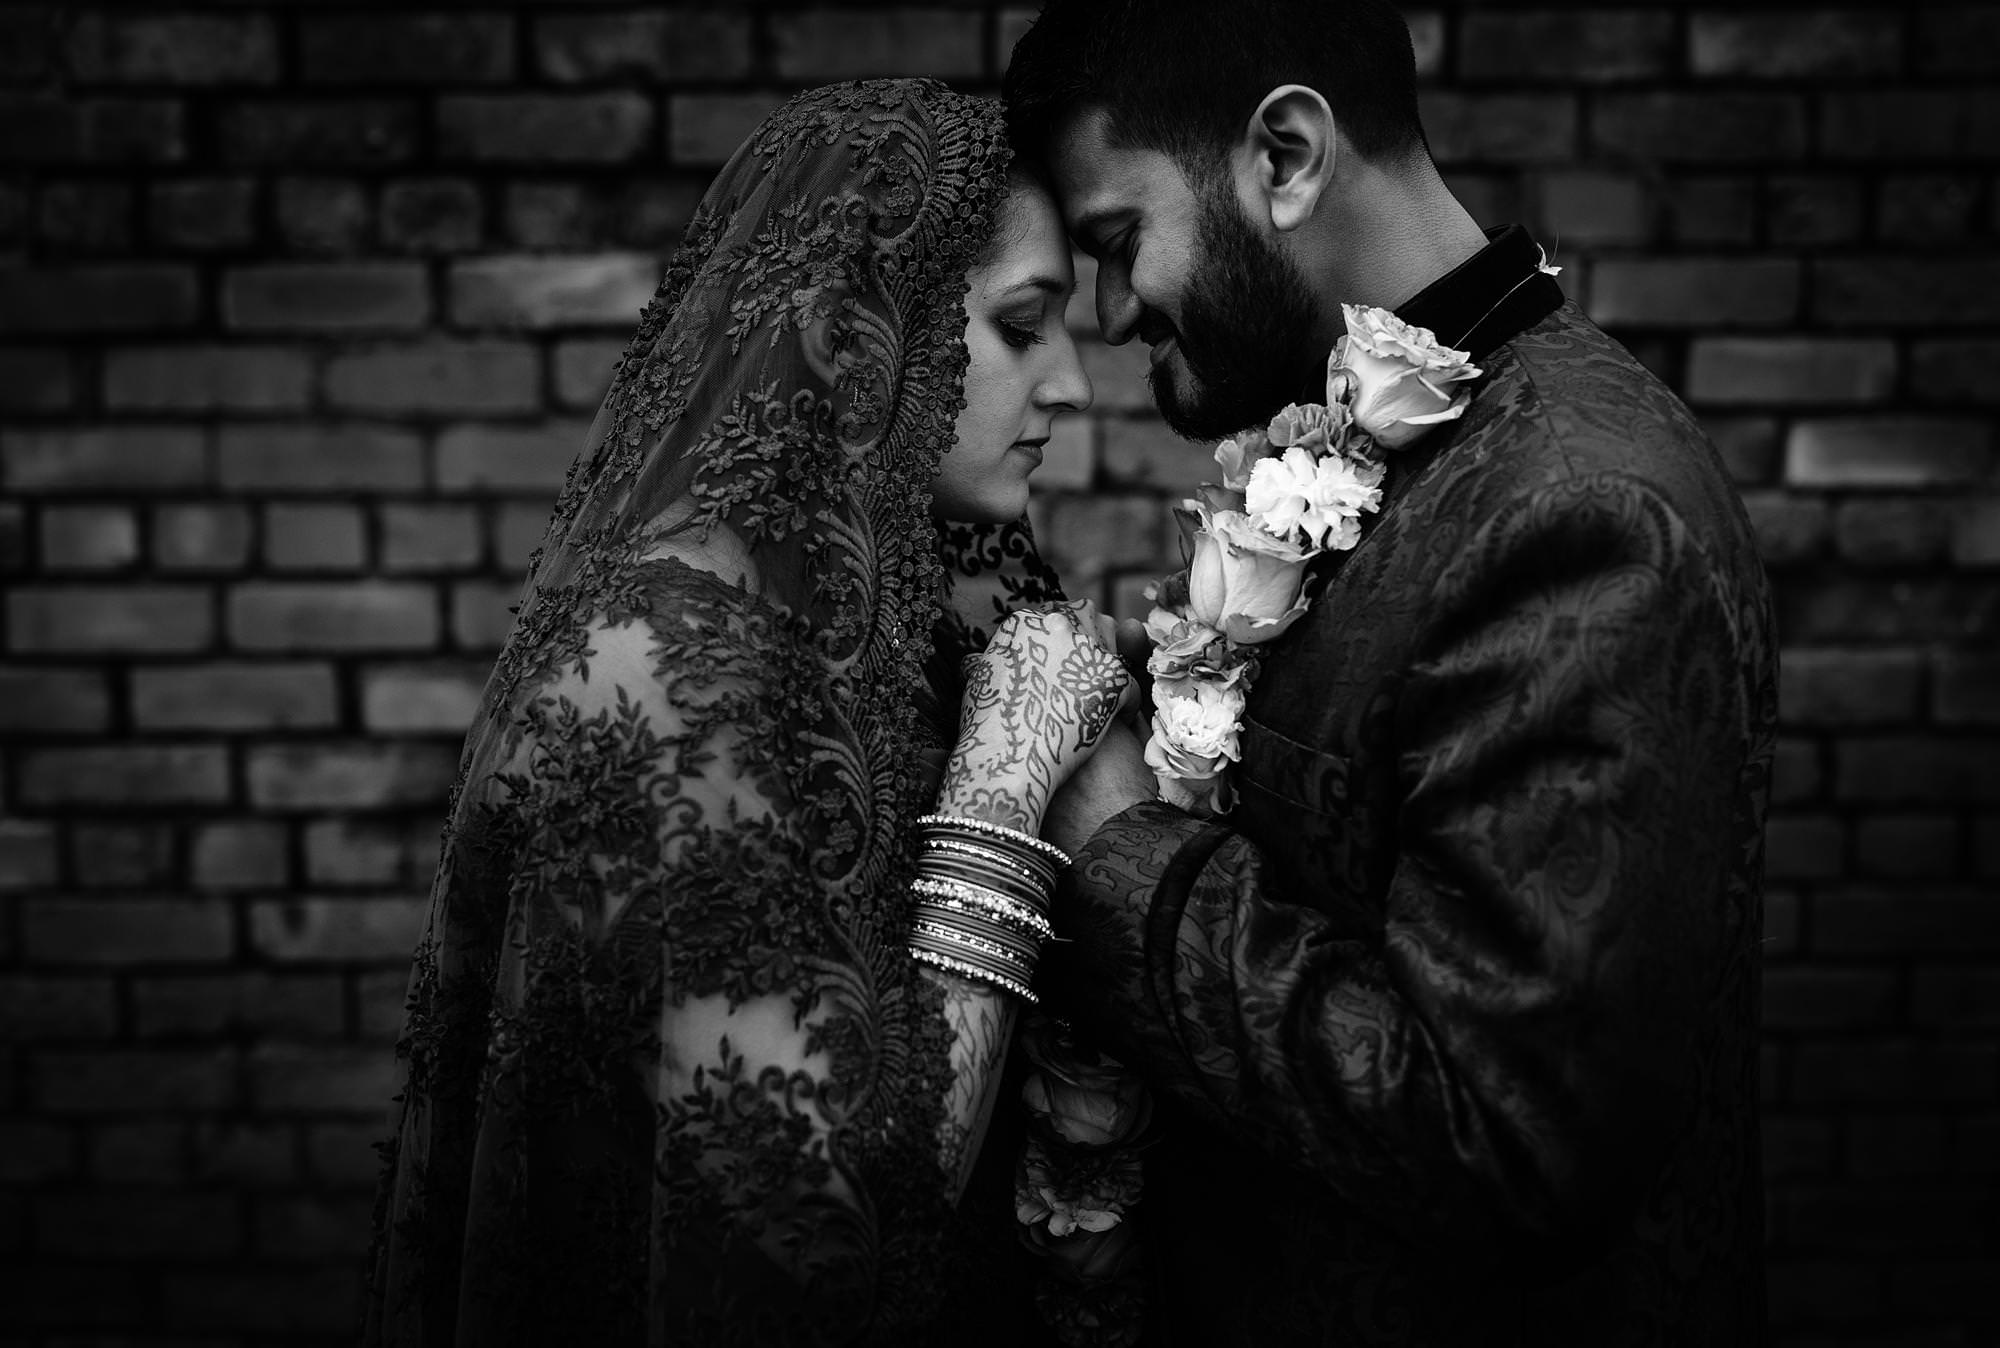 shropshire wedding and portrait photographer captures black and white images of muslim wedding in Manchester